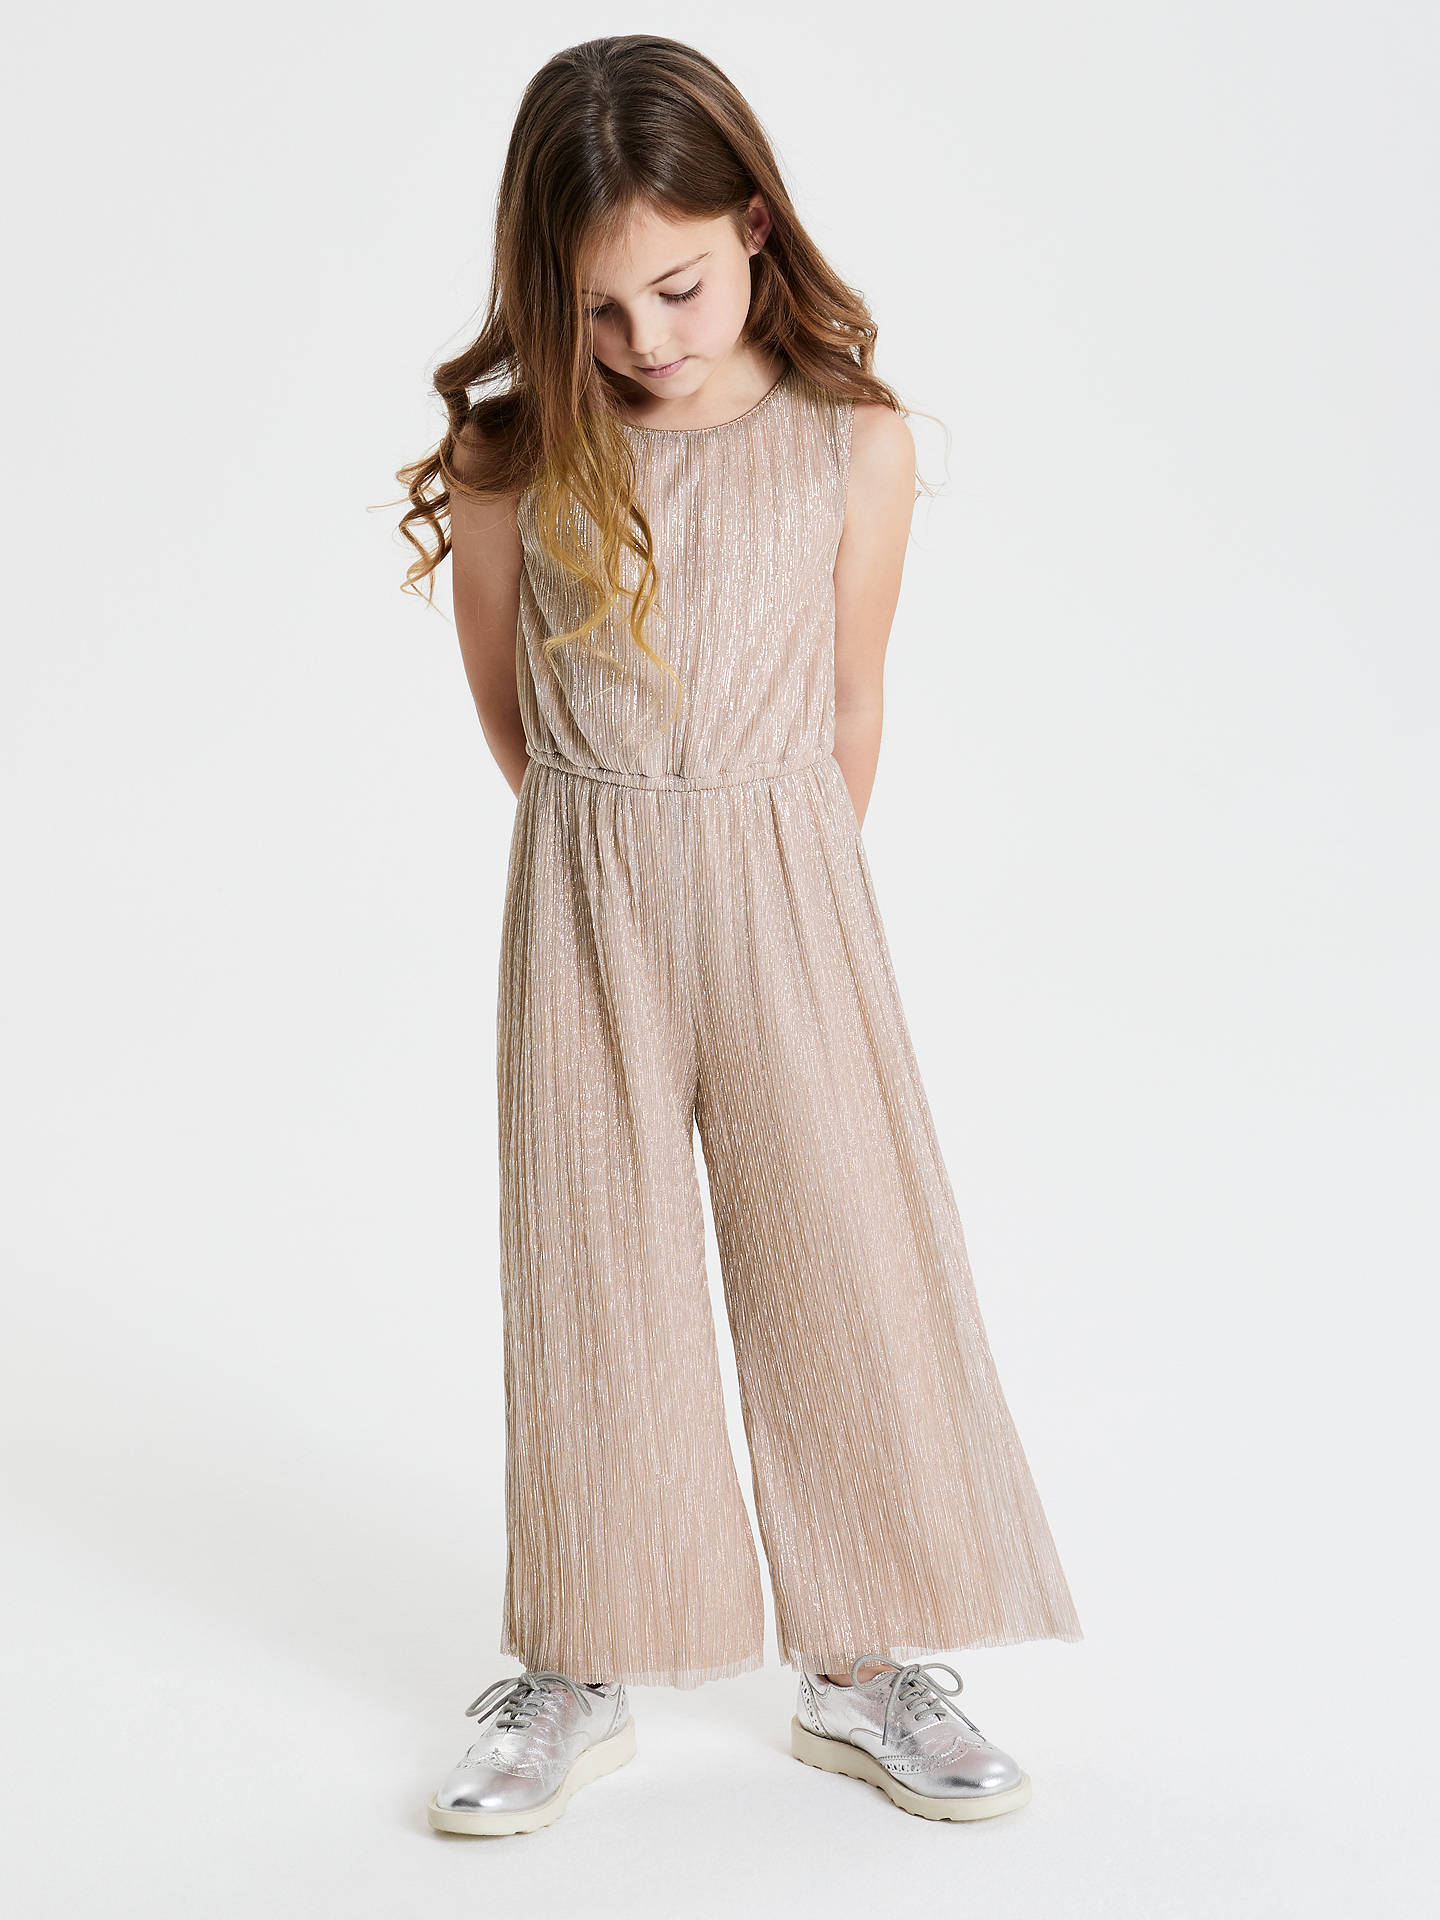 BuyJohn Lewis & Partners Girls' Metallic Jumpsuit, Rose Gold, 8 years Online at johnlewis.com